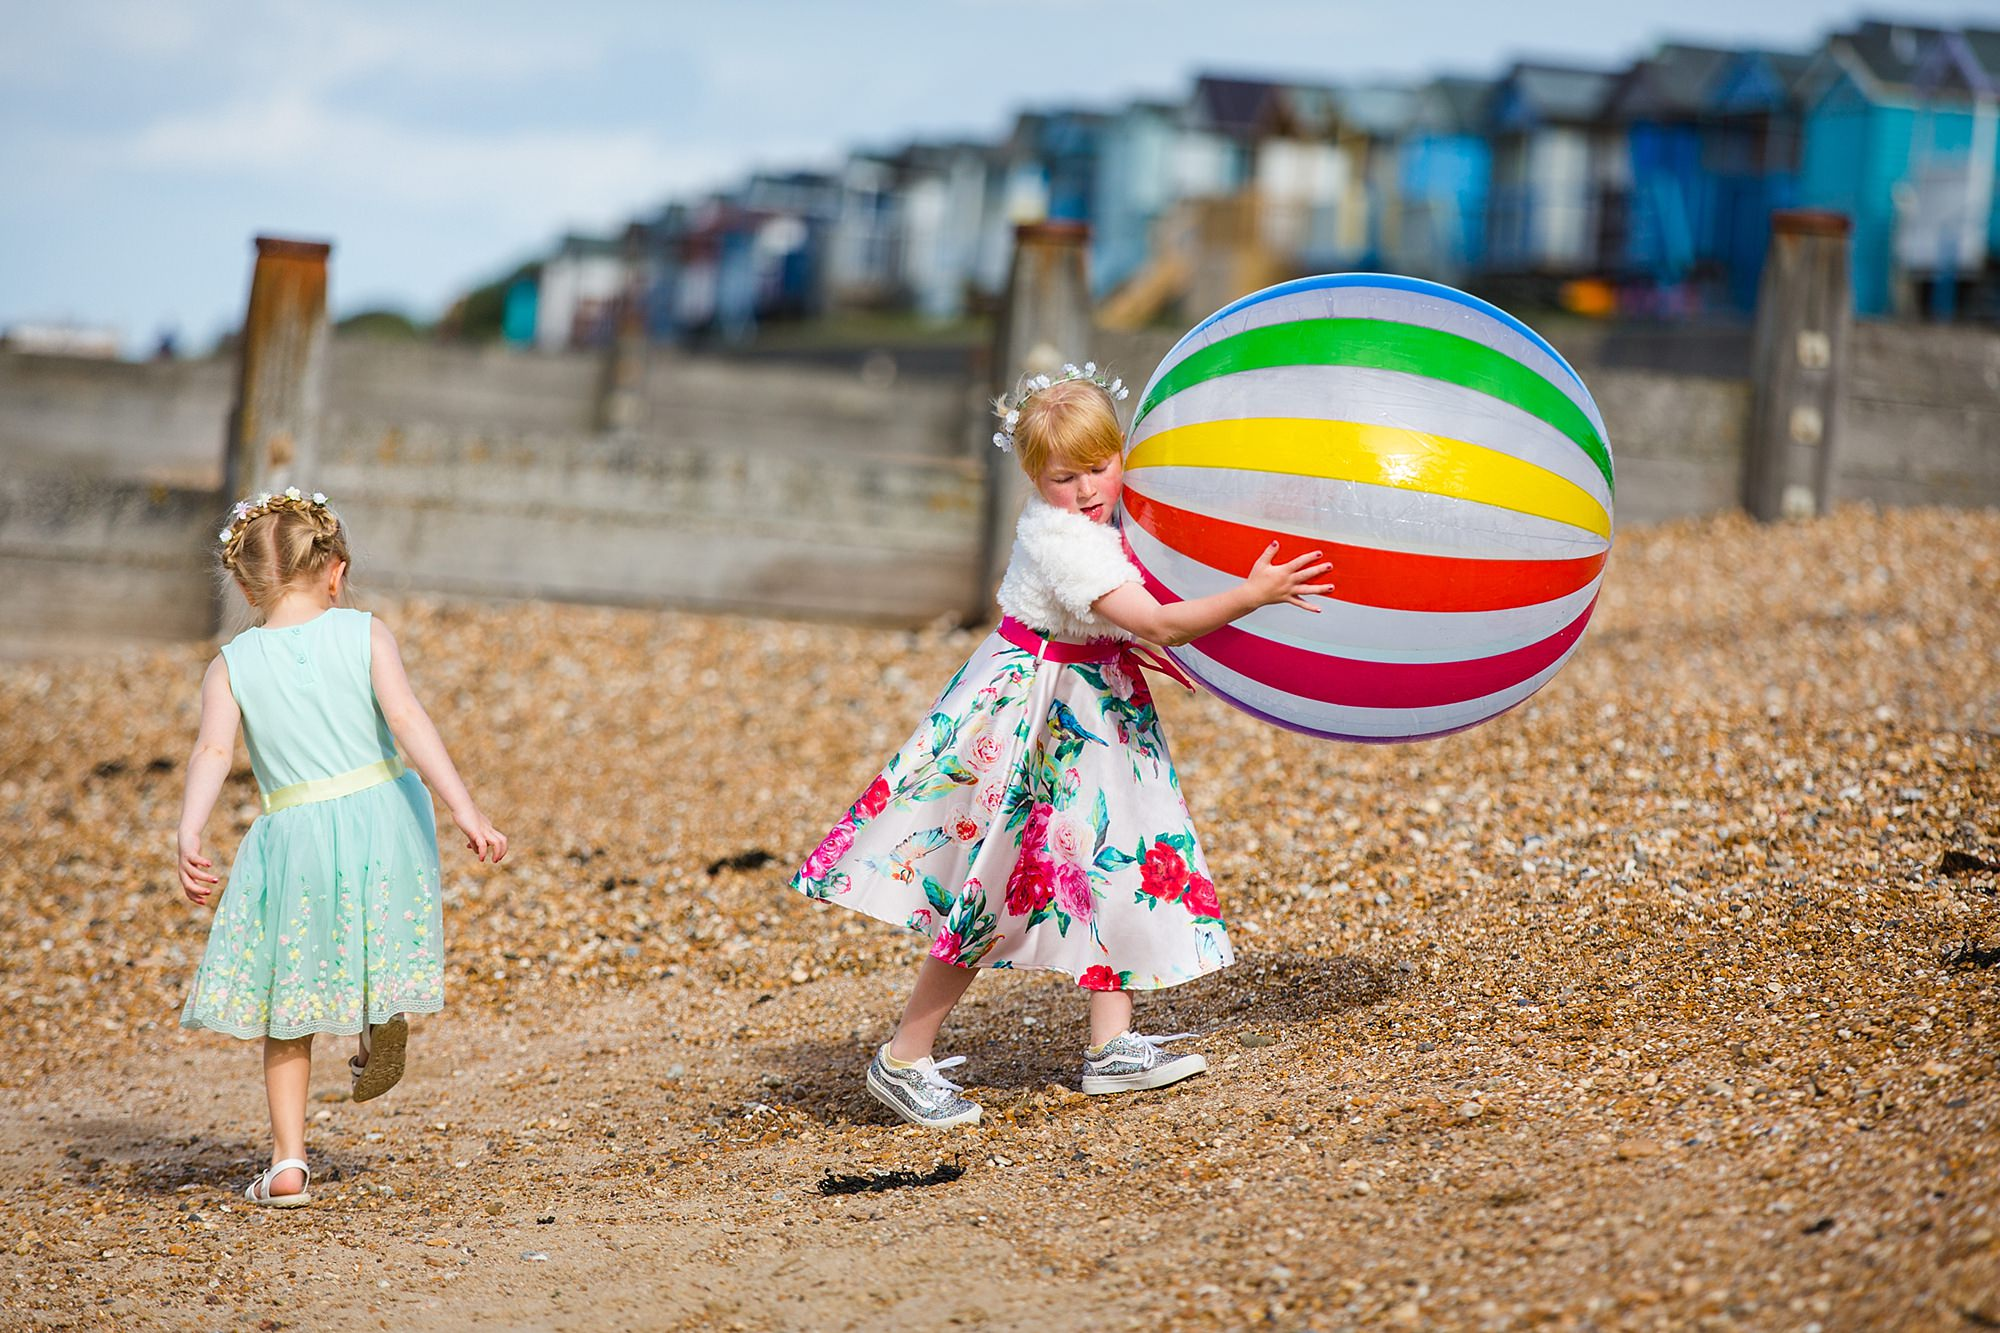 Beacon House wedding flower girl carrying giant beach ball